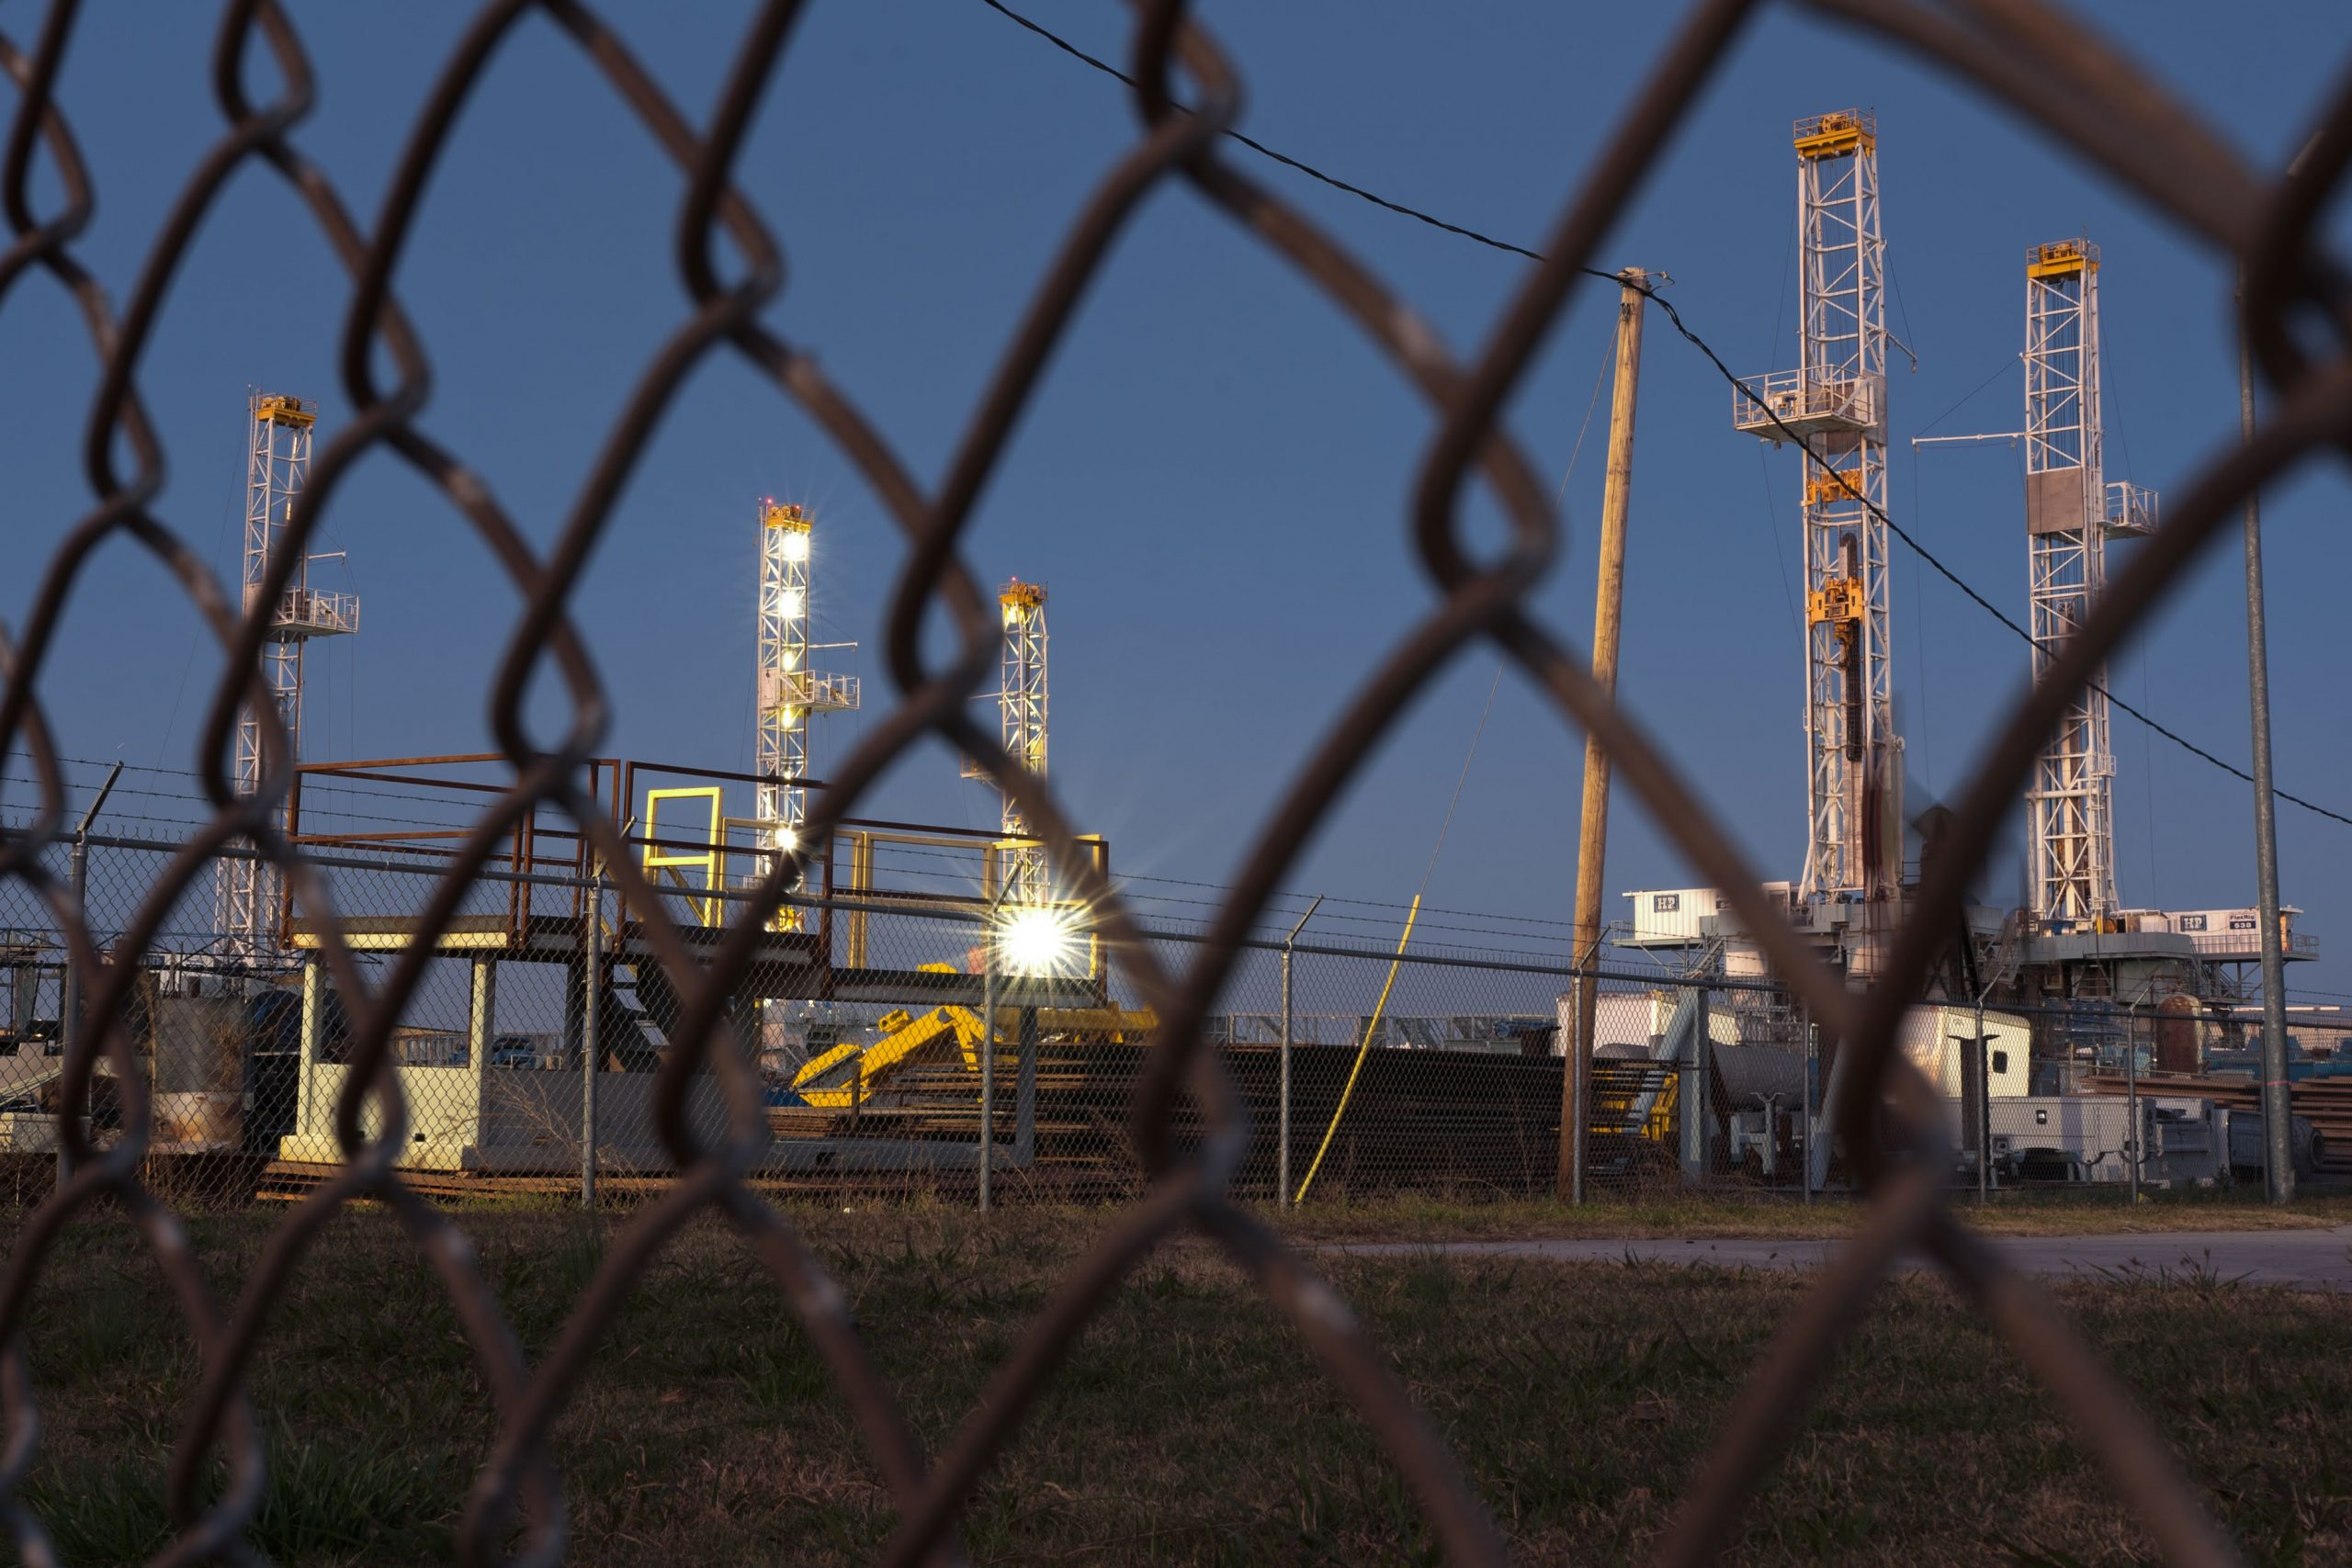 Despite Fear in Oklahoma, Biden Likely Won't Be 'Banning' Fracking